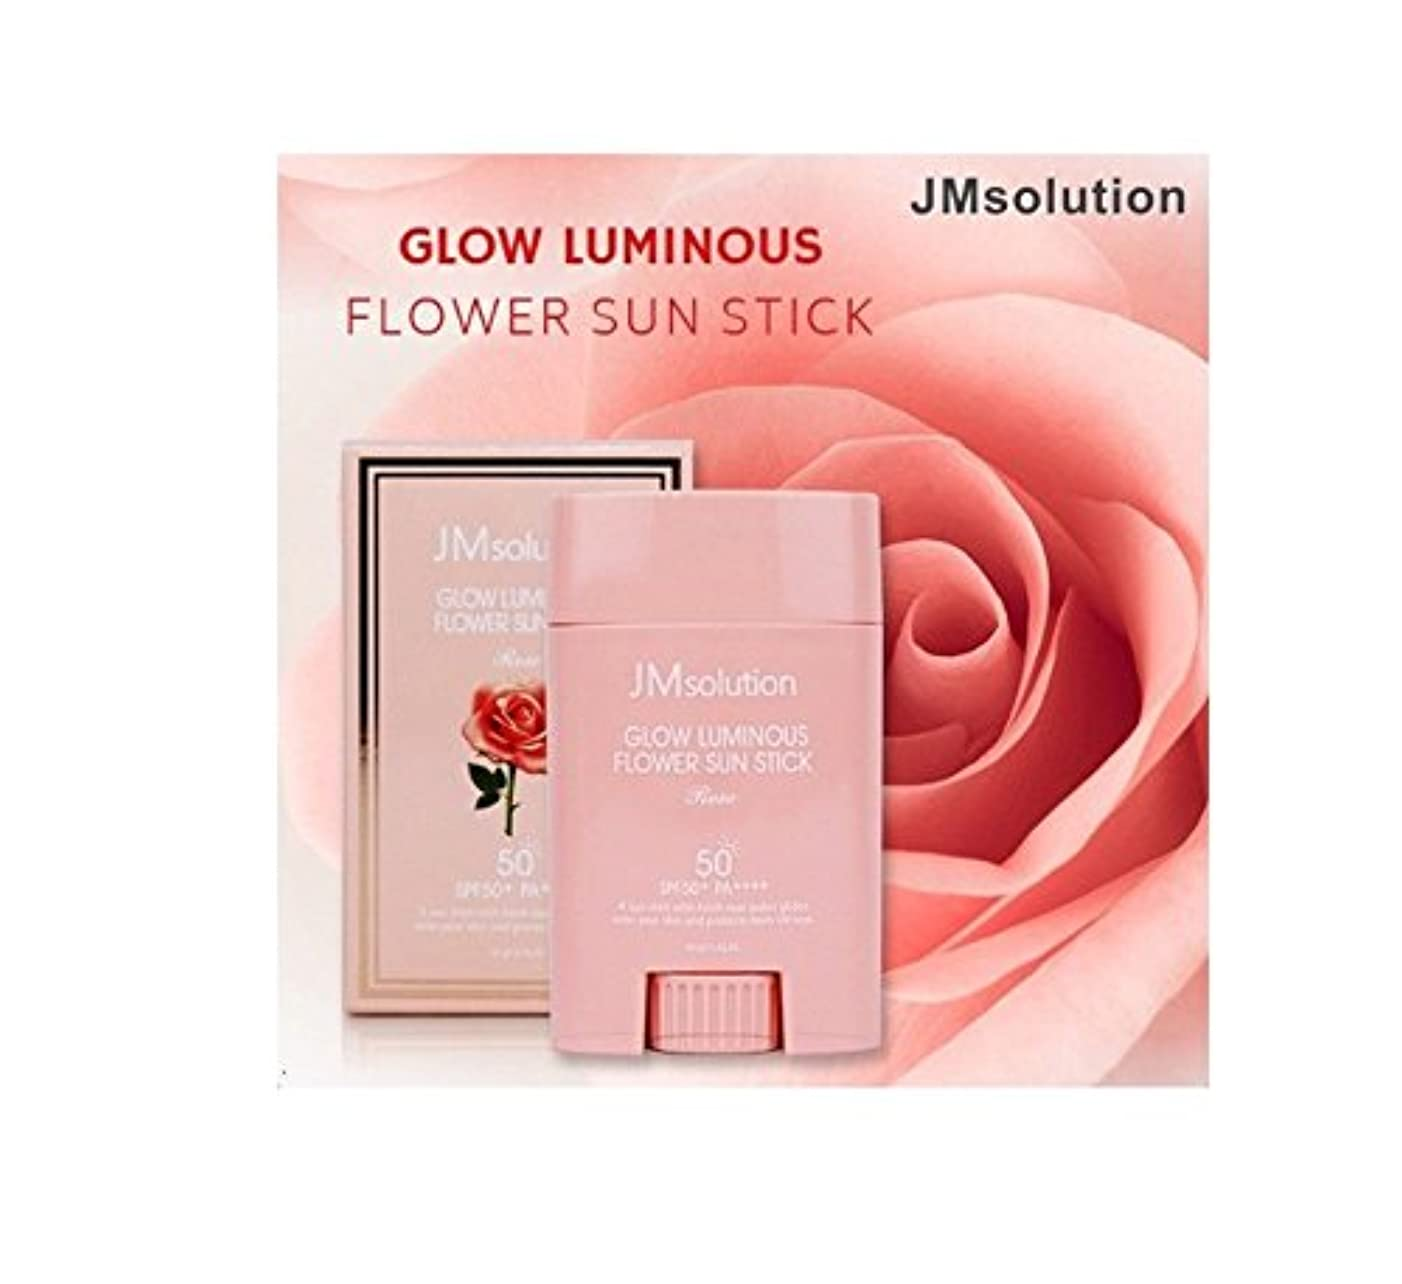 真剣に初期水素JM Solution Glow Luminous Flower Sun Stick Rose 21g (spf50 PA) 光る輝く花Sun Stick Rose